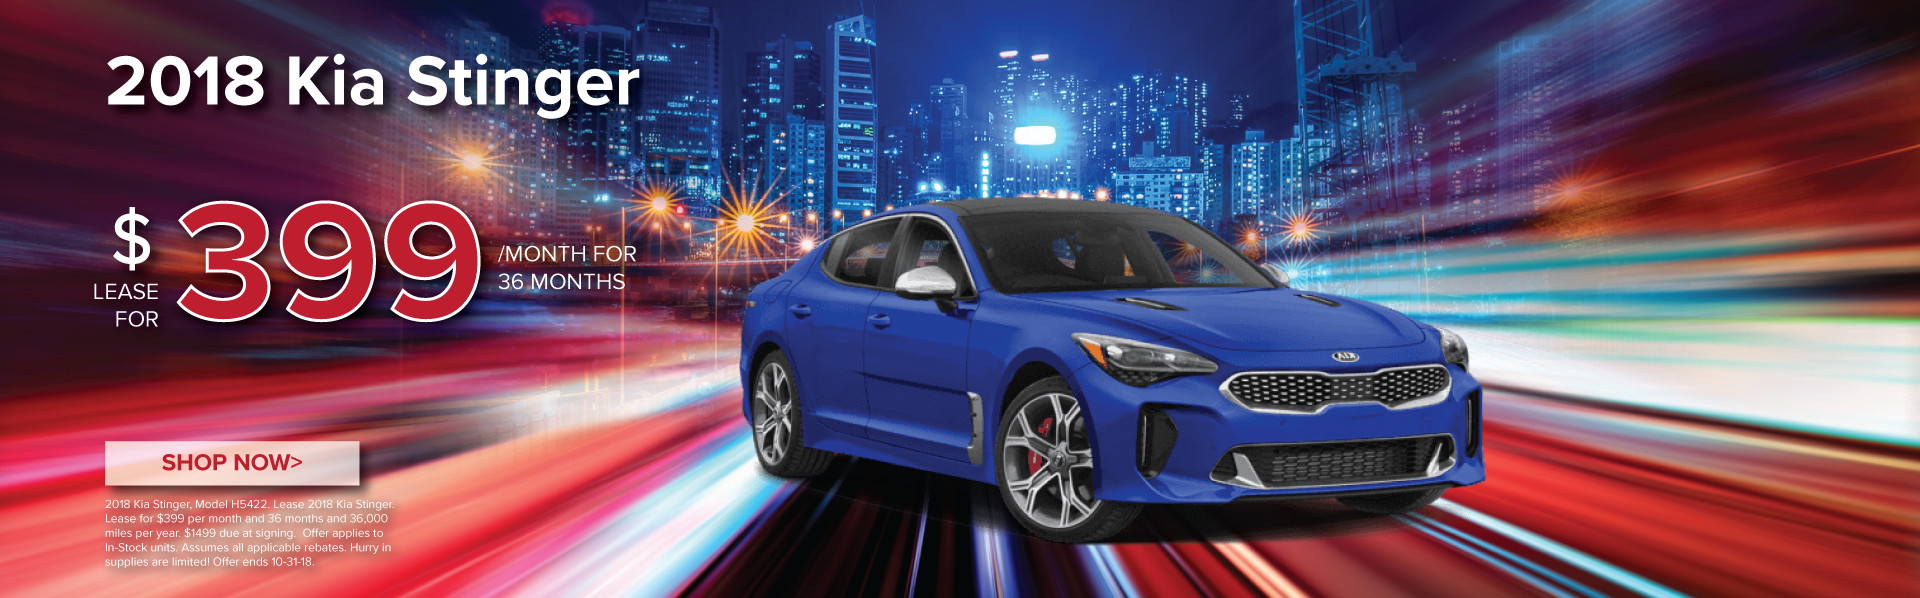 Attractive 2018 Kia Stinger